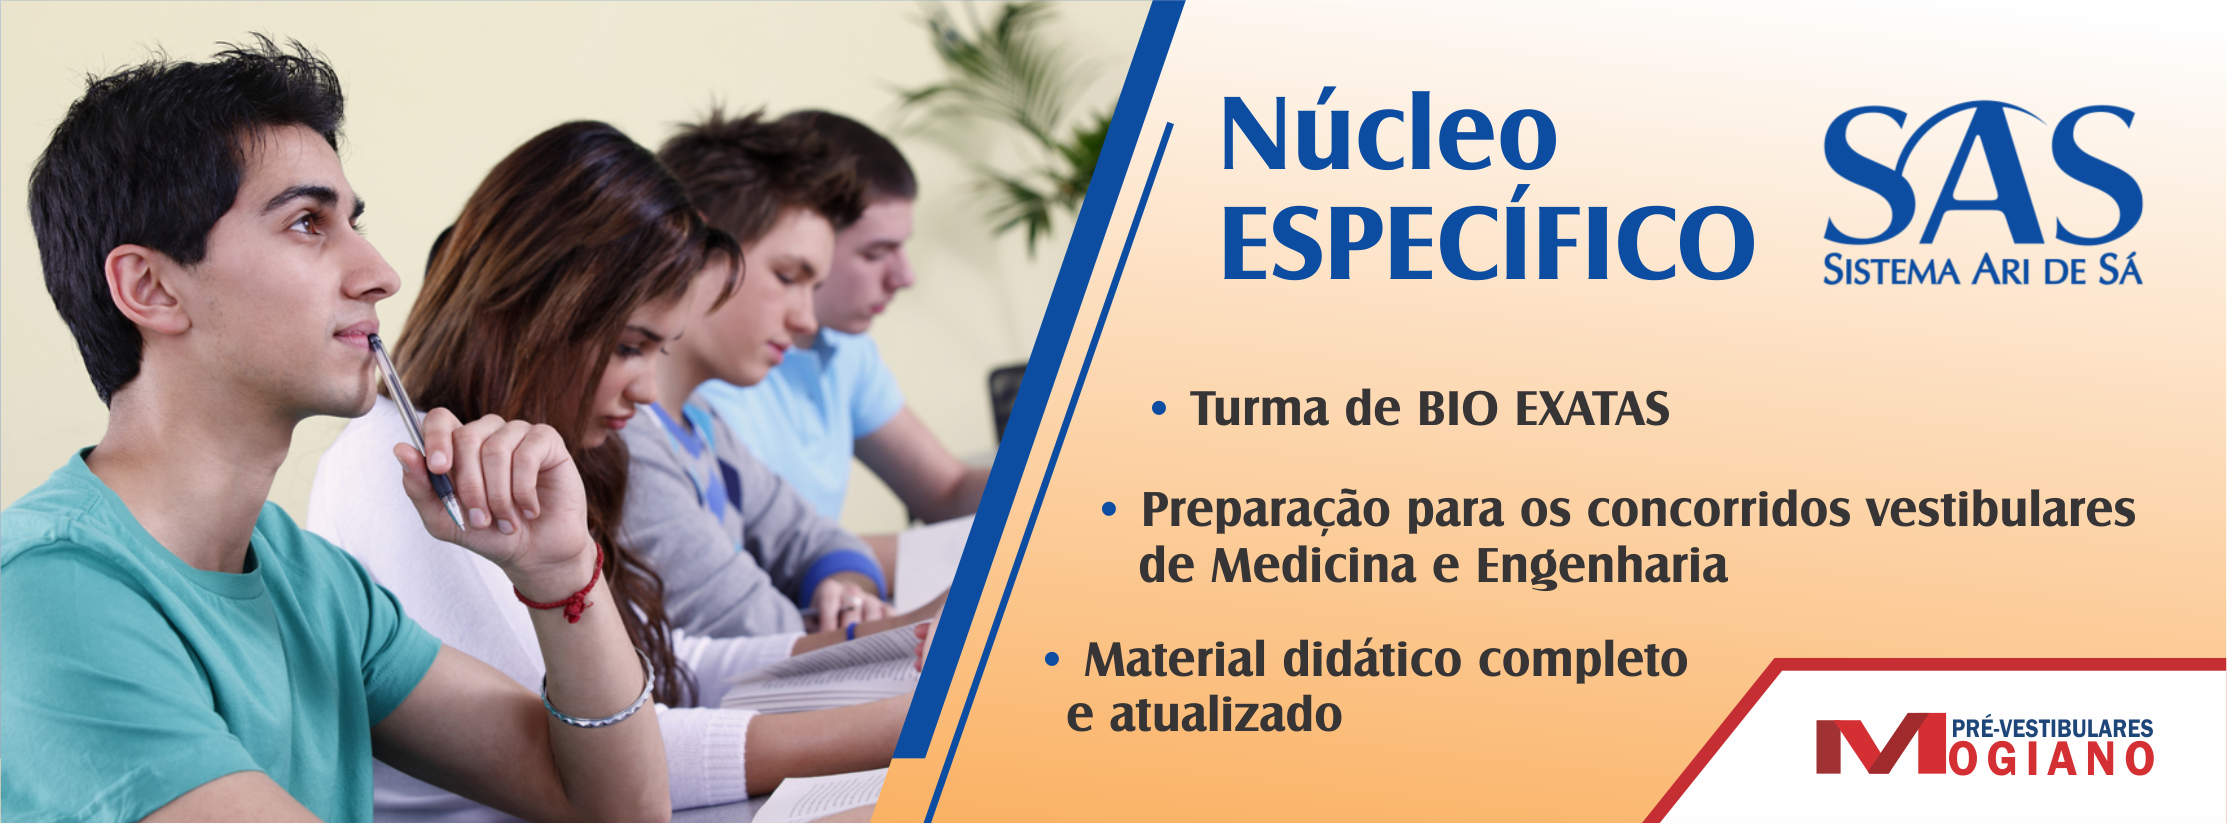 MOGIANO_NUCLEO_ESPECIFICO_SITE.png